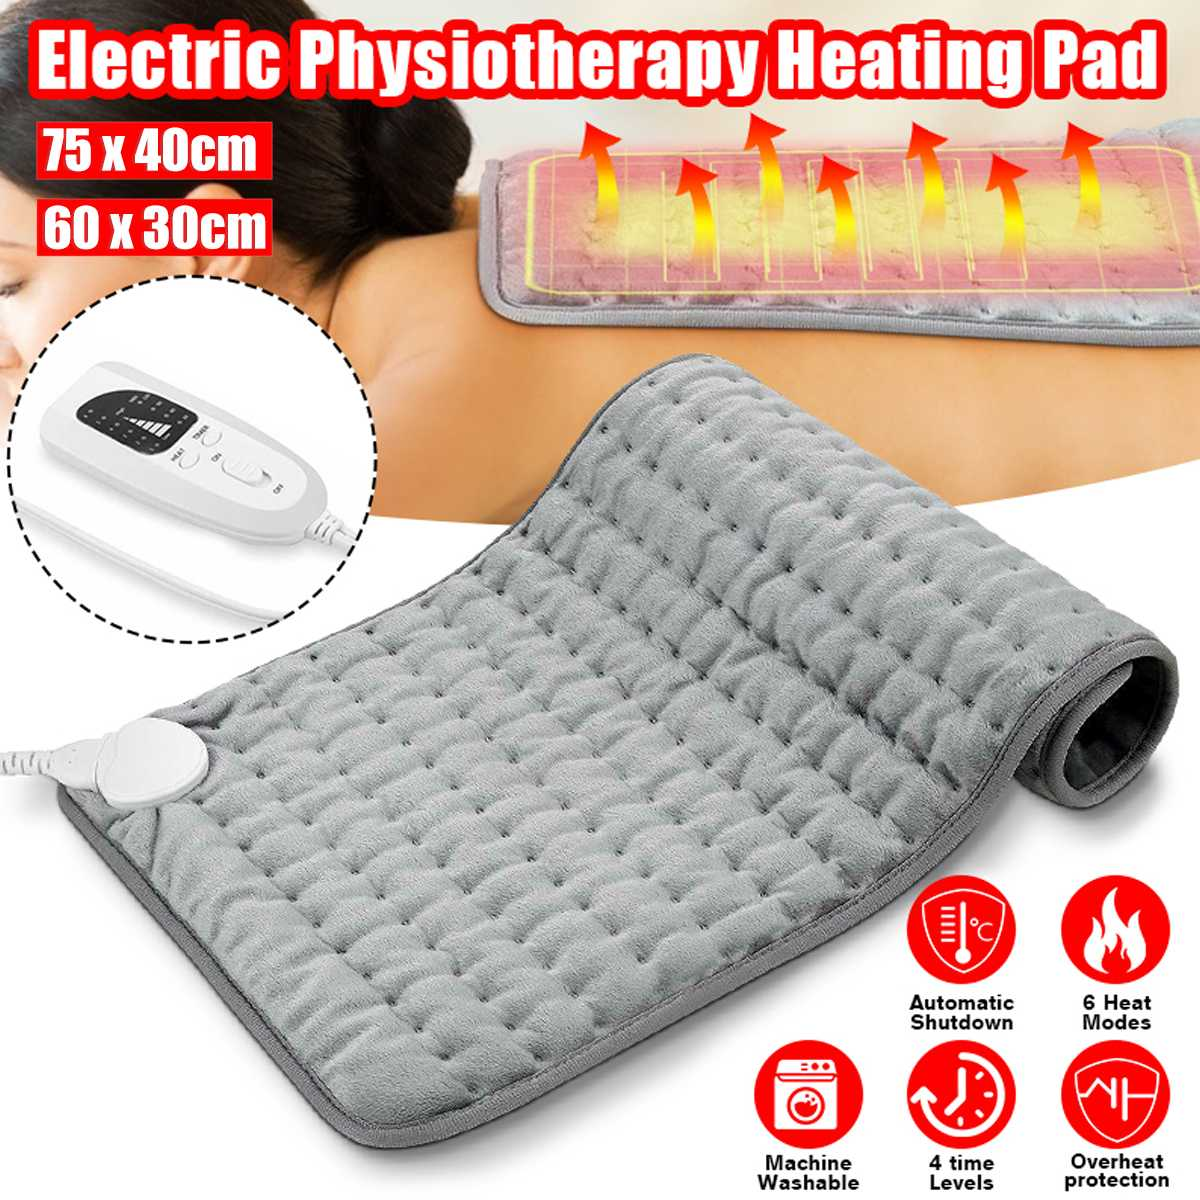 6 Level 120W Electric Heating Pad Timer For Shoulder Neck Back Spine Leg Pain Relief Winter Warmer 75x40cm 60x30cm EU/US/UK/AU